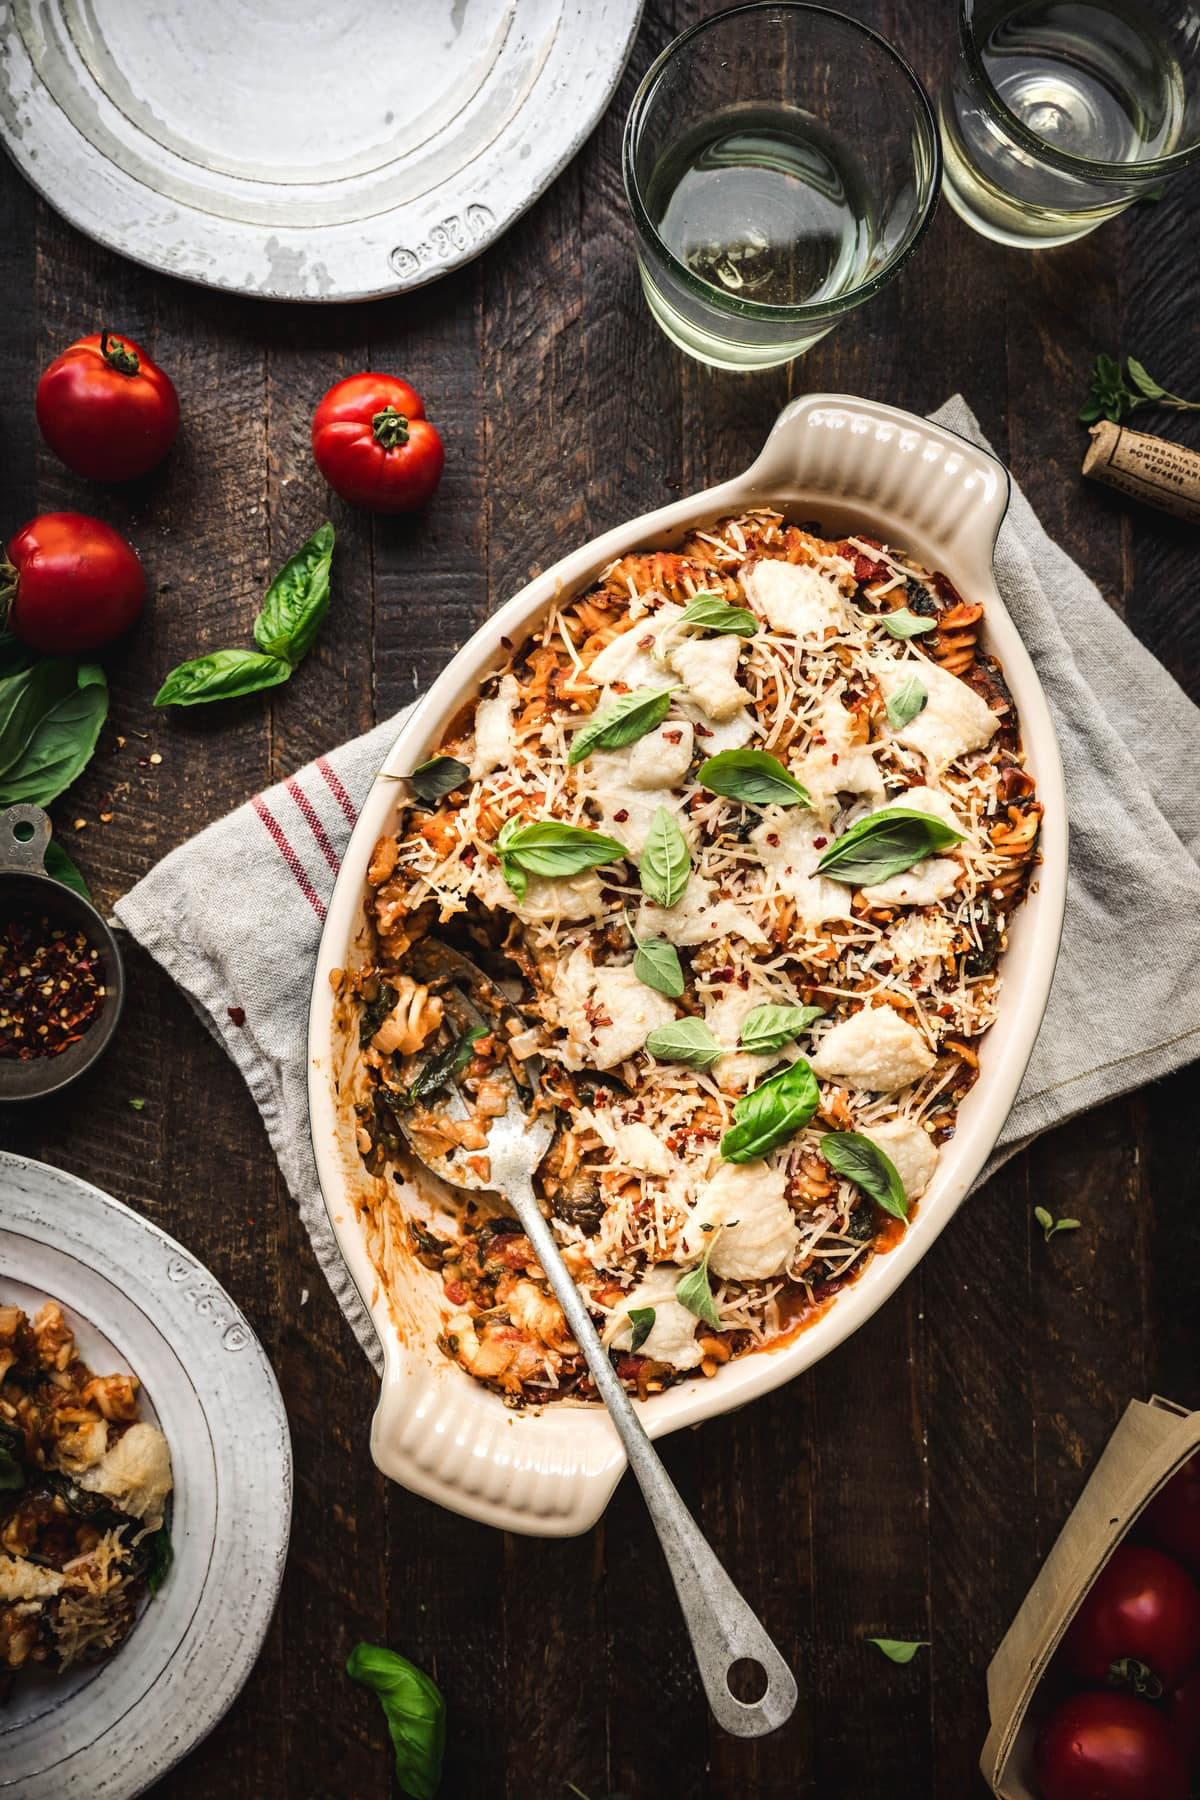 Overhead view of healthy vegan pasta bake on a rustic wood surface